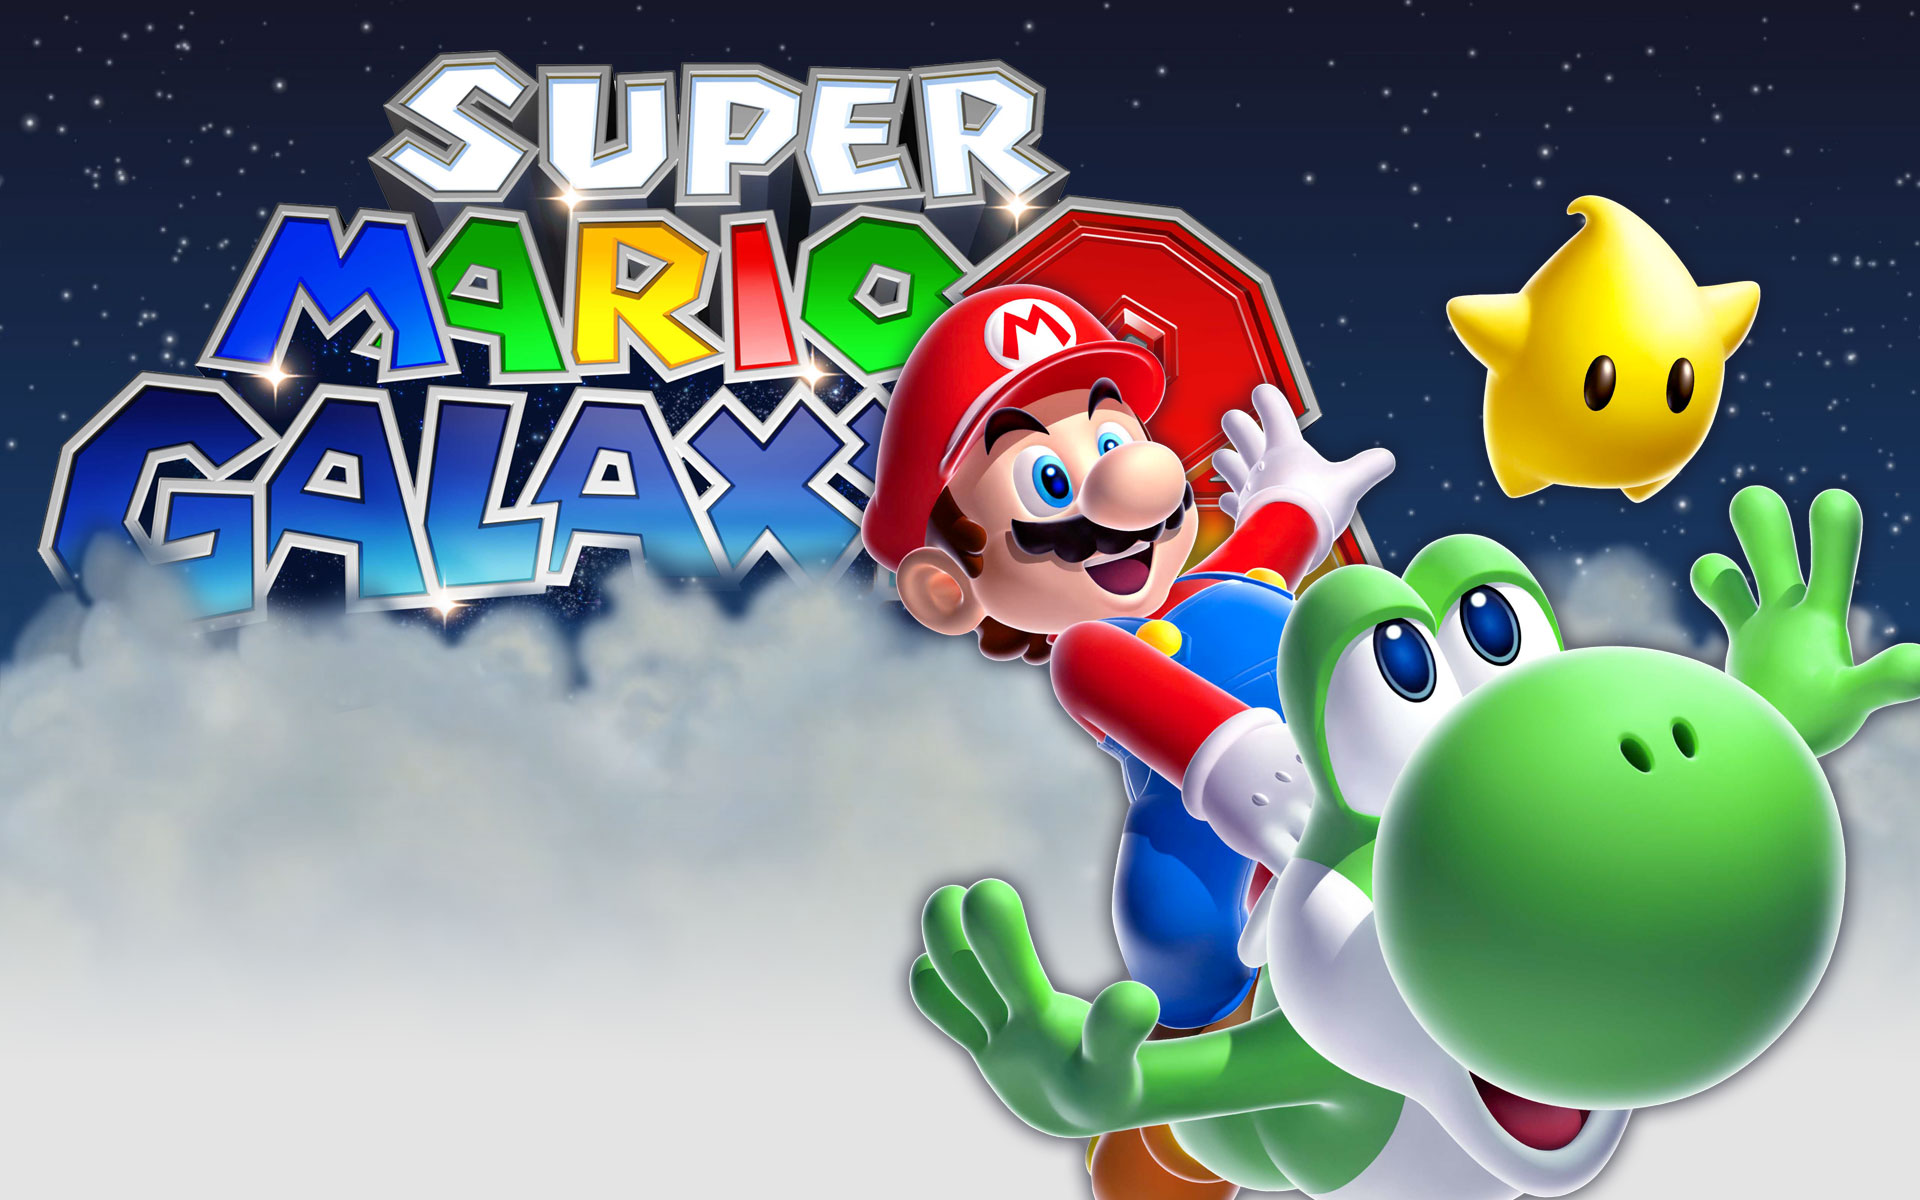 Super Mario Galaxy 11004 Hd Wallpaper